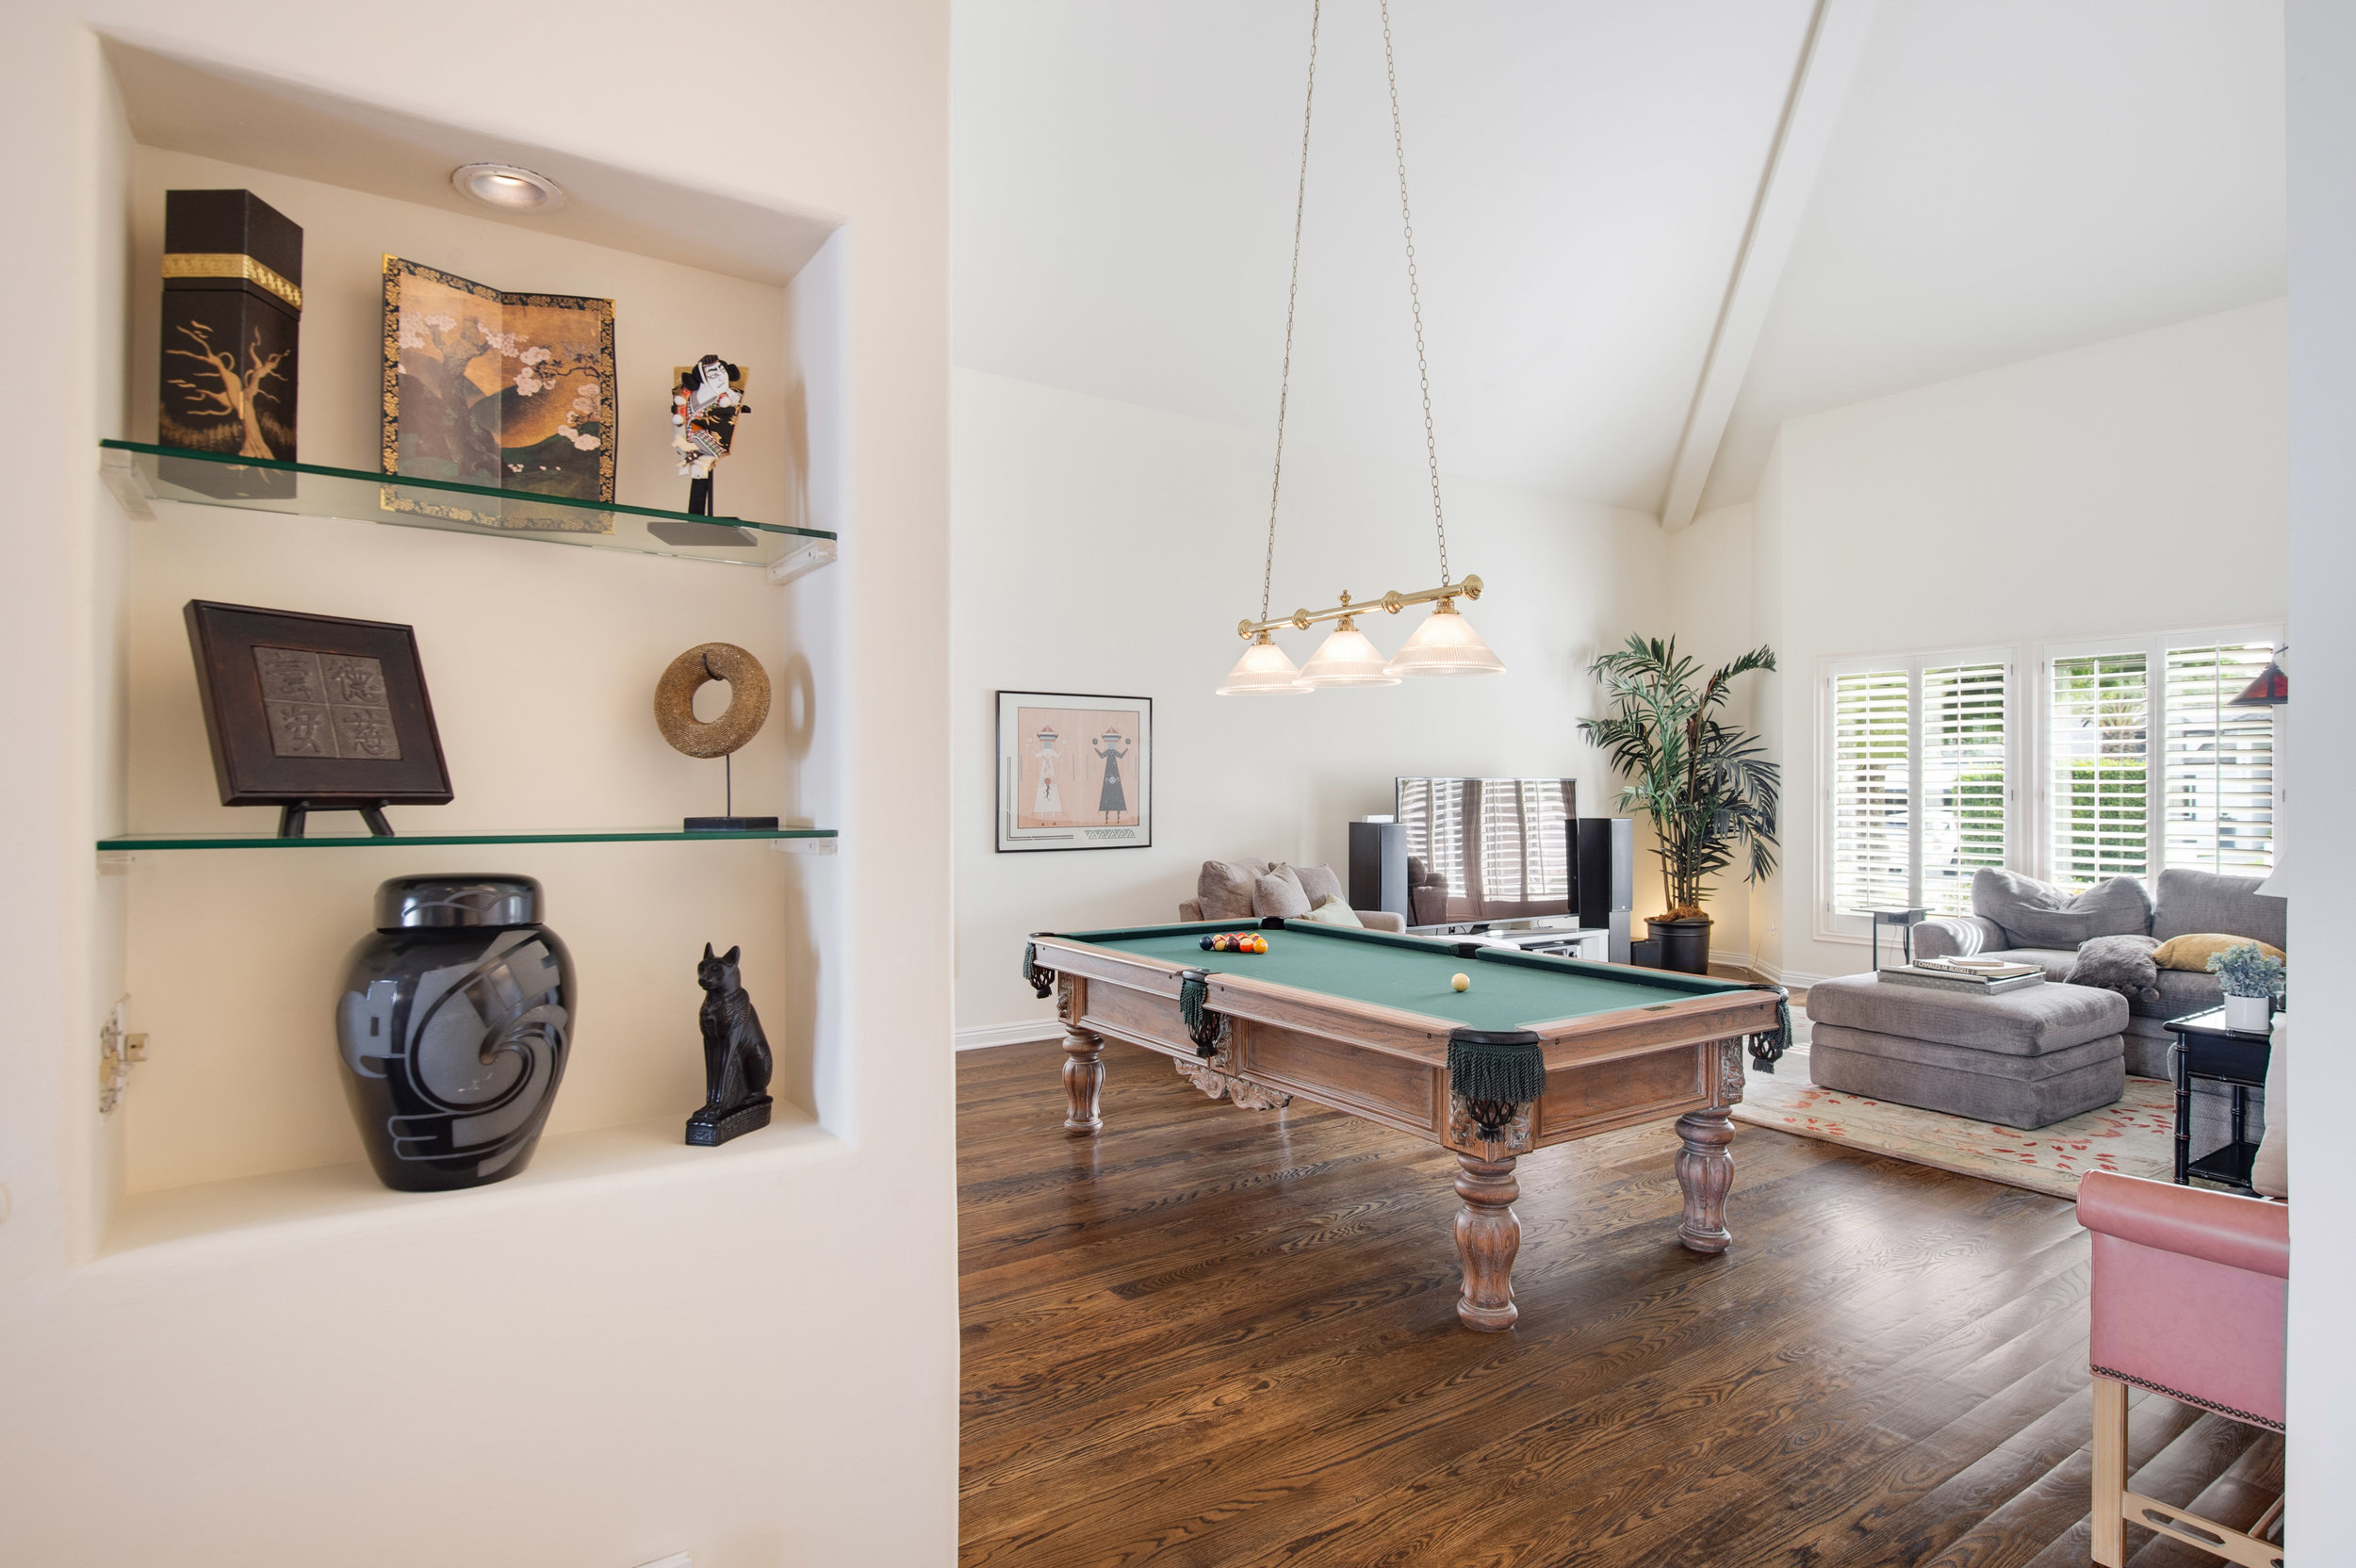 011 Living Room 12027 Talus Place Beverly Hills 90210 For Sale Lease The Malibu Life Team Luxury Real Estate.jpg